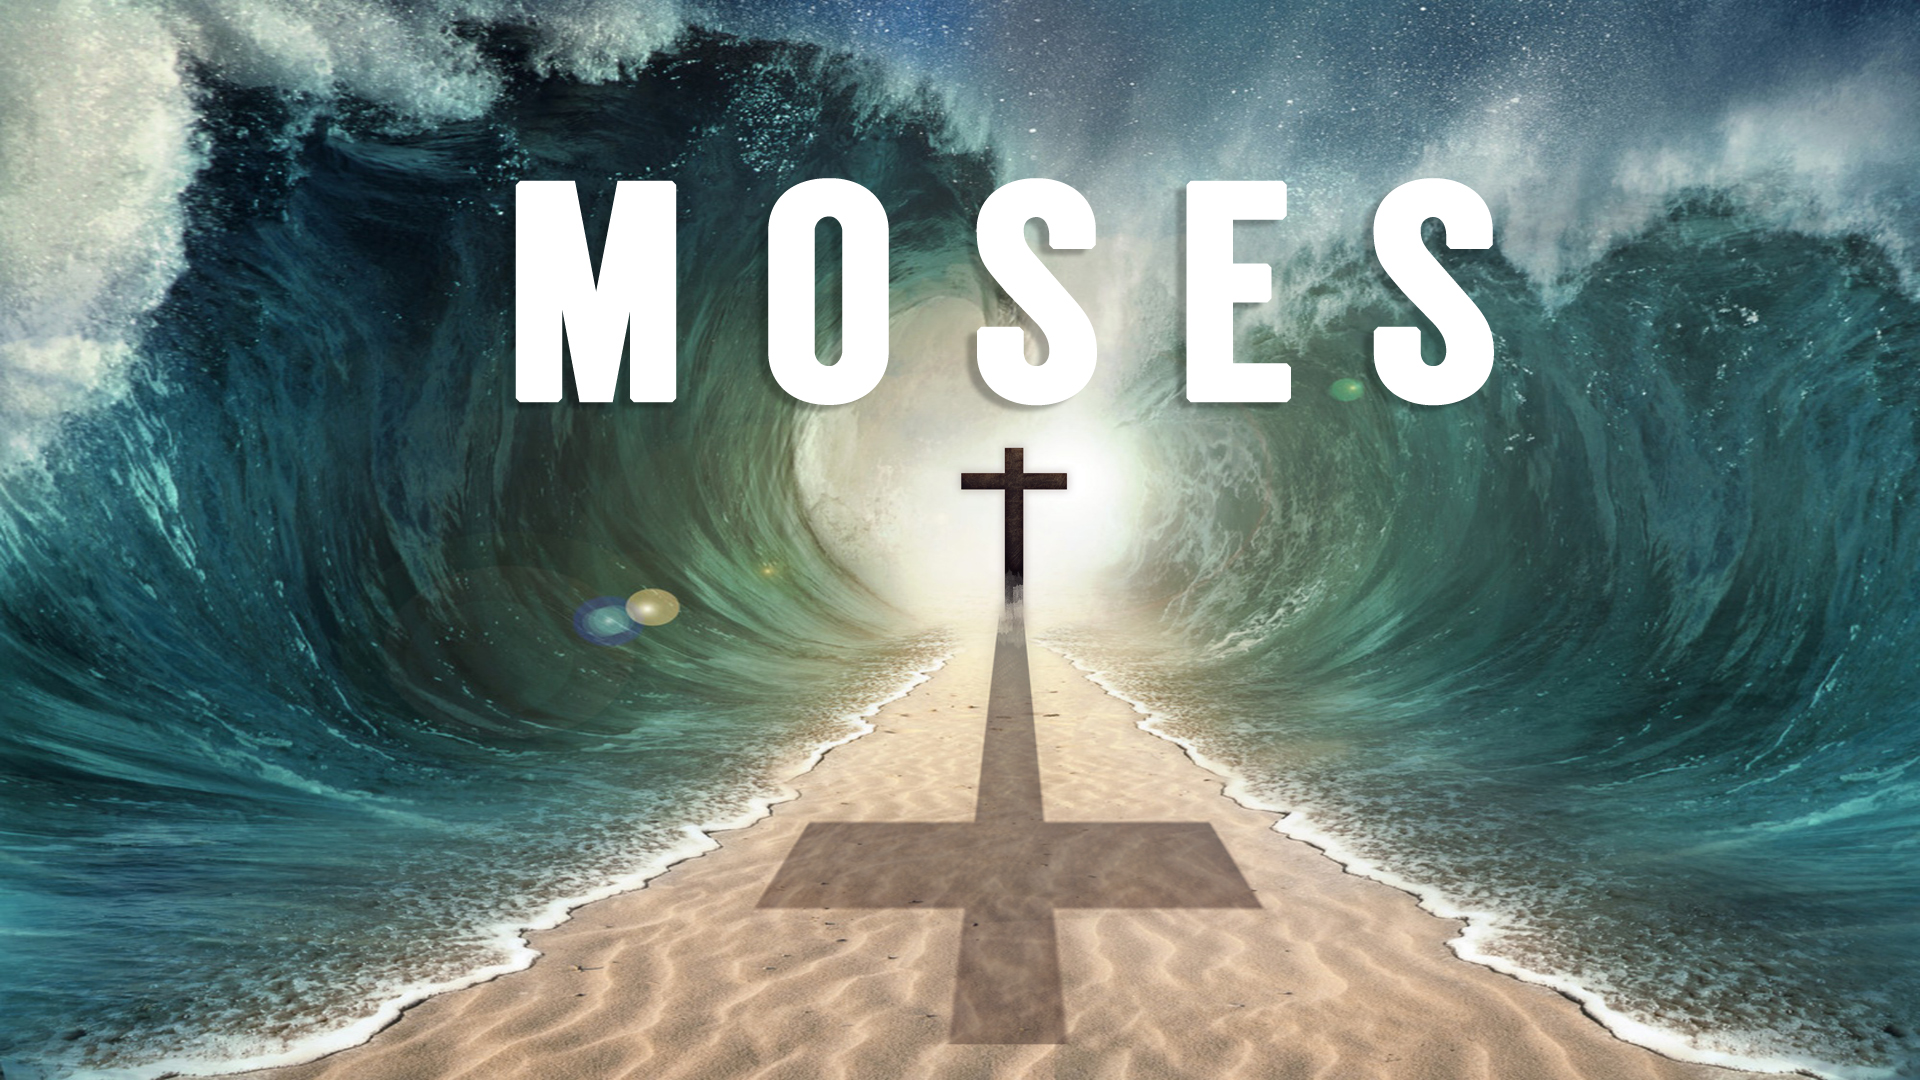 Moses and Cross